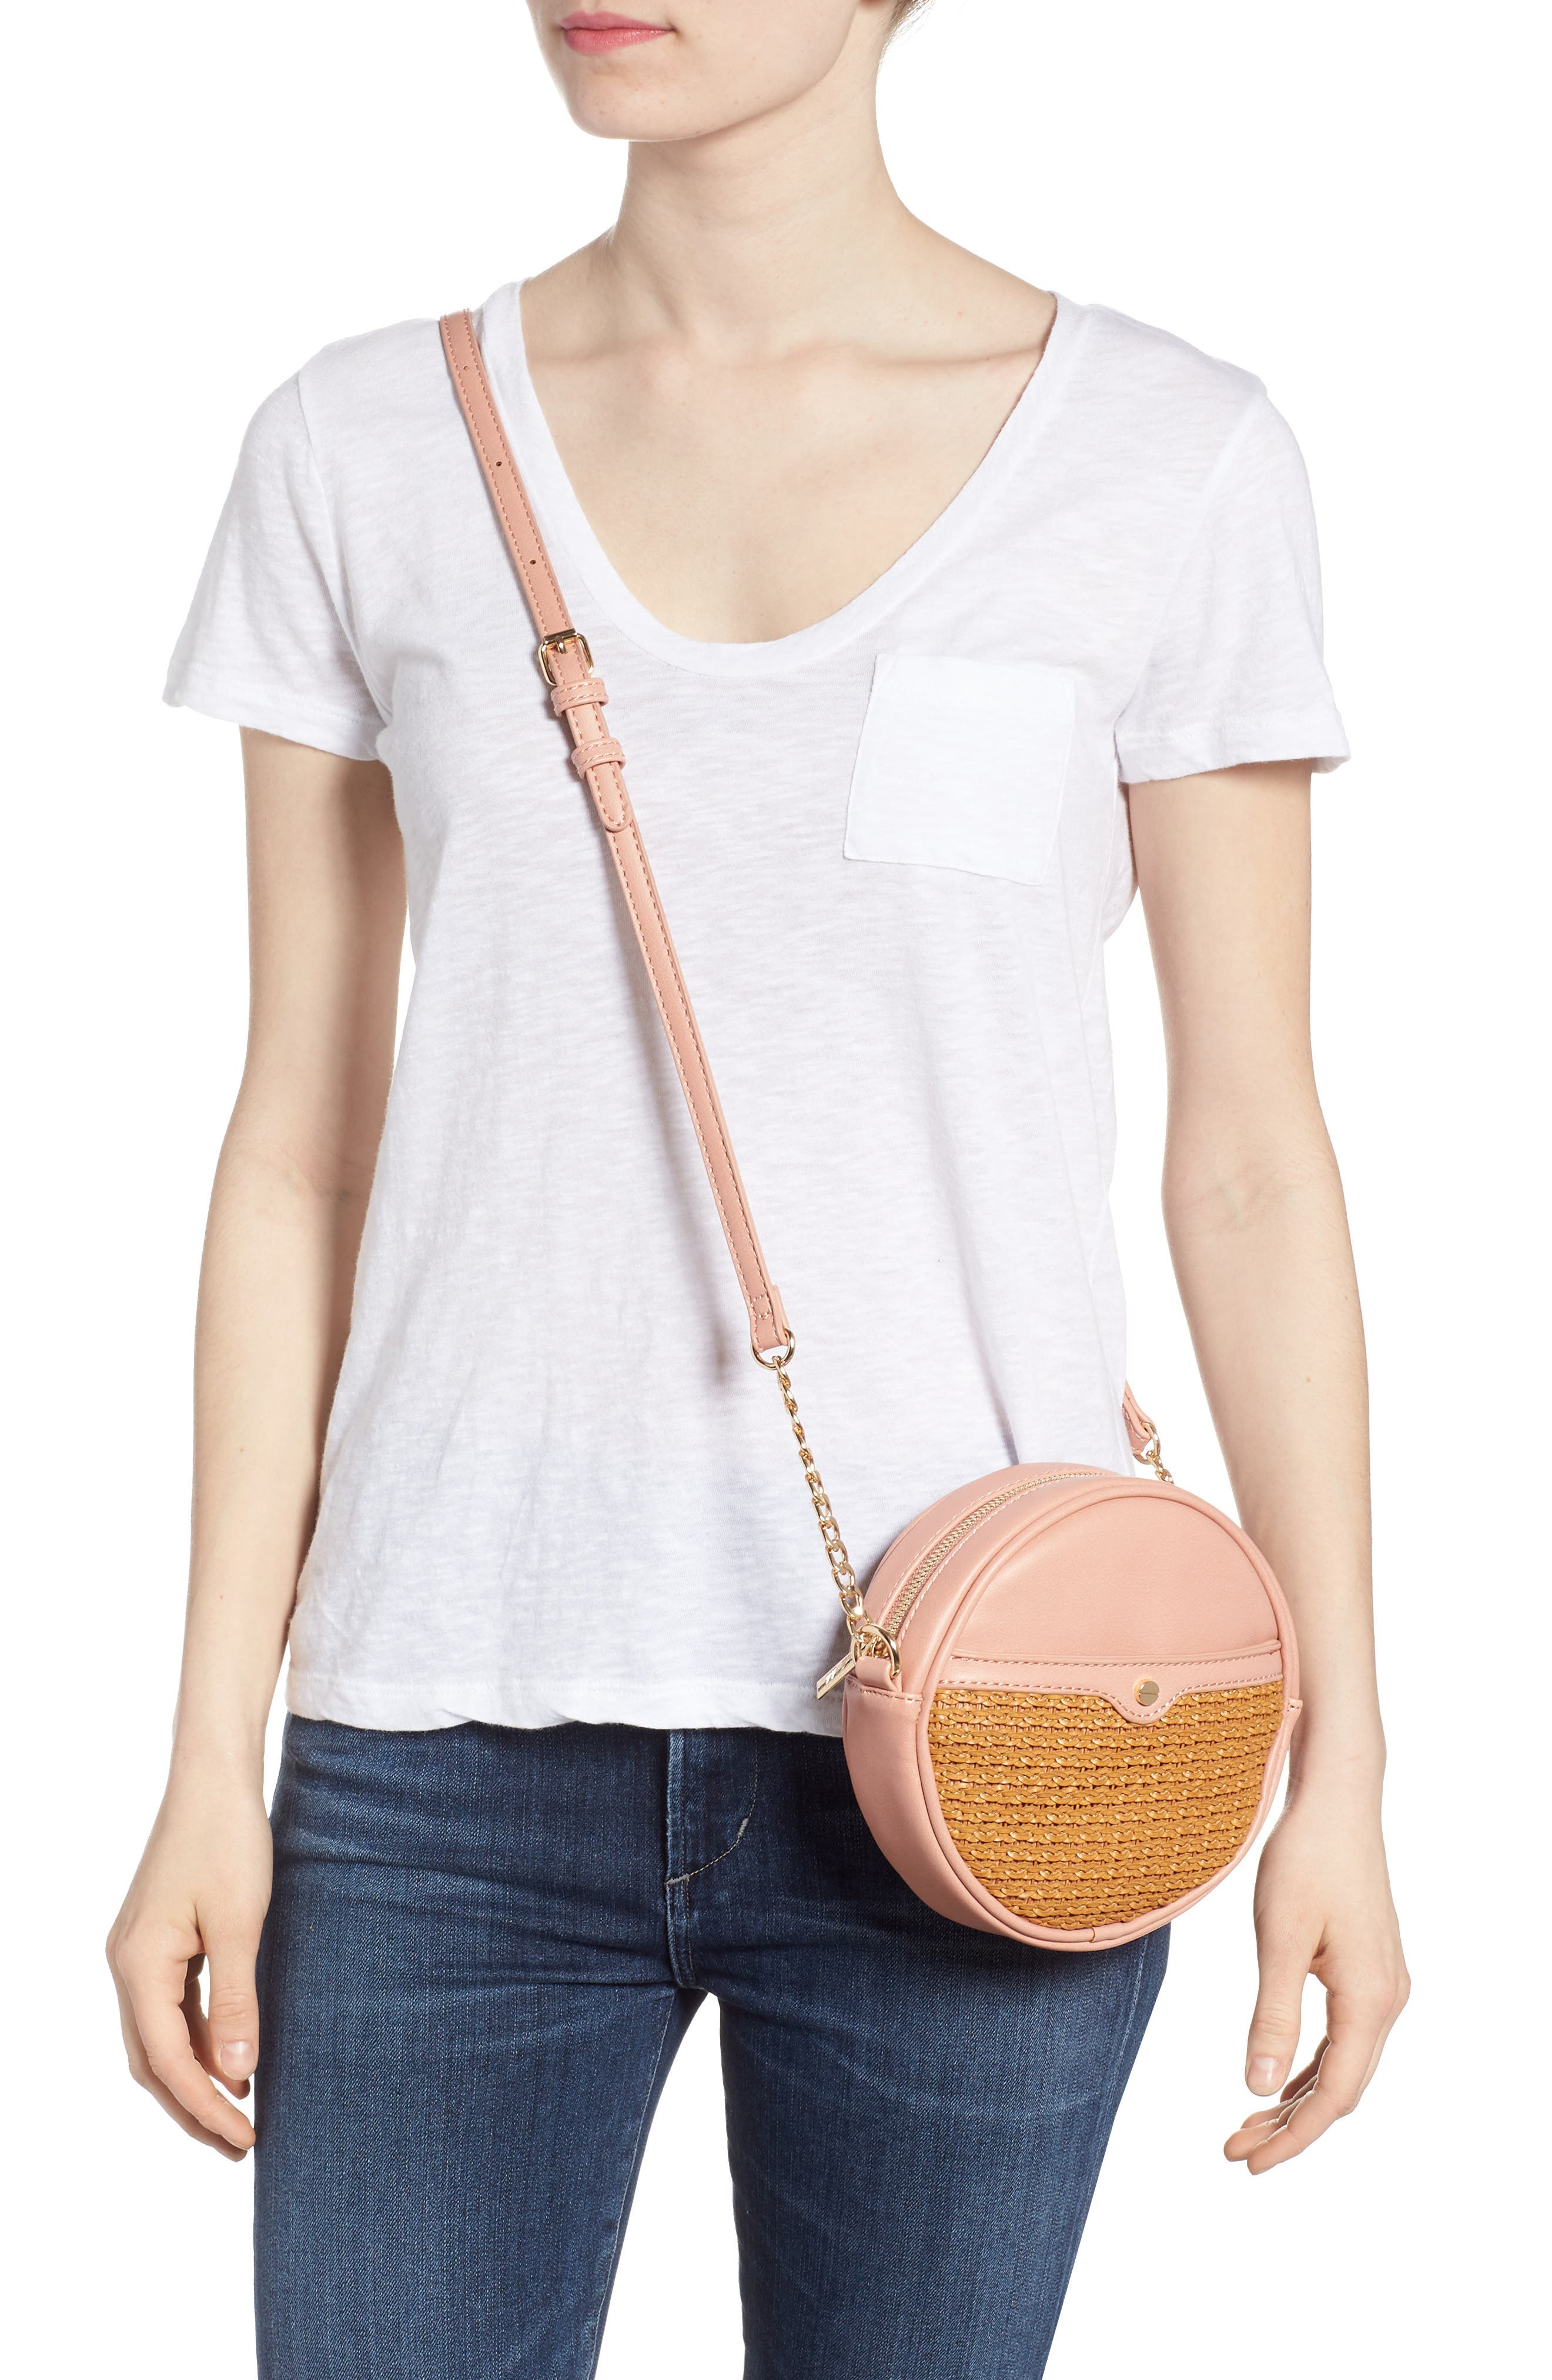 Mali + Lili Basket Weave Vegan Leather Canteen Crossbody Bag,                             Alternate thumbnail 2, color,                             200